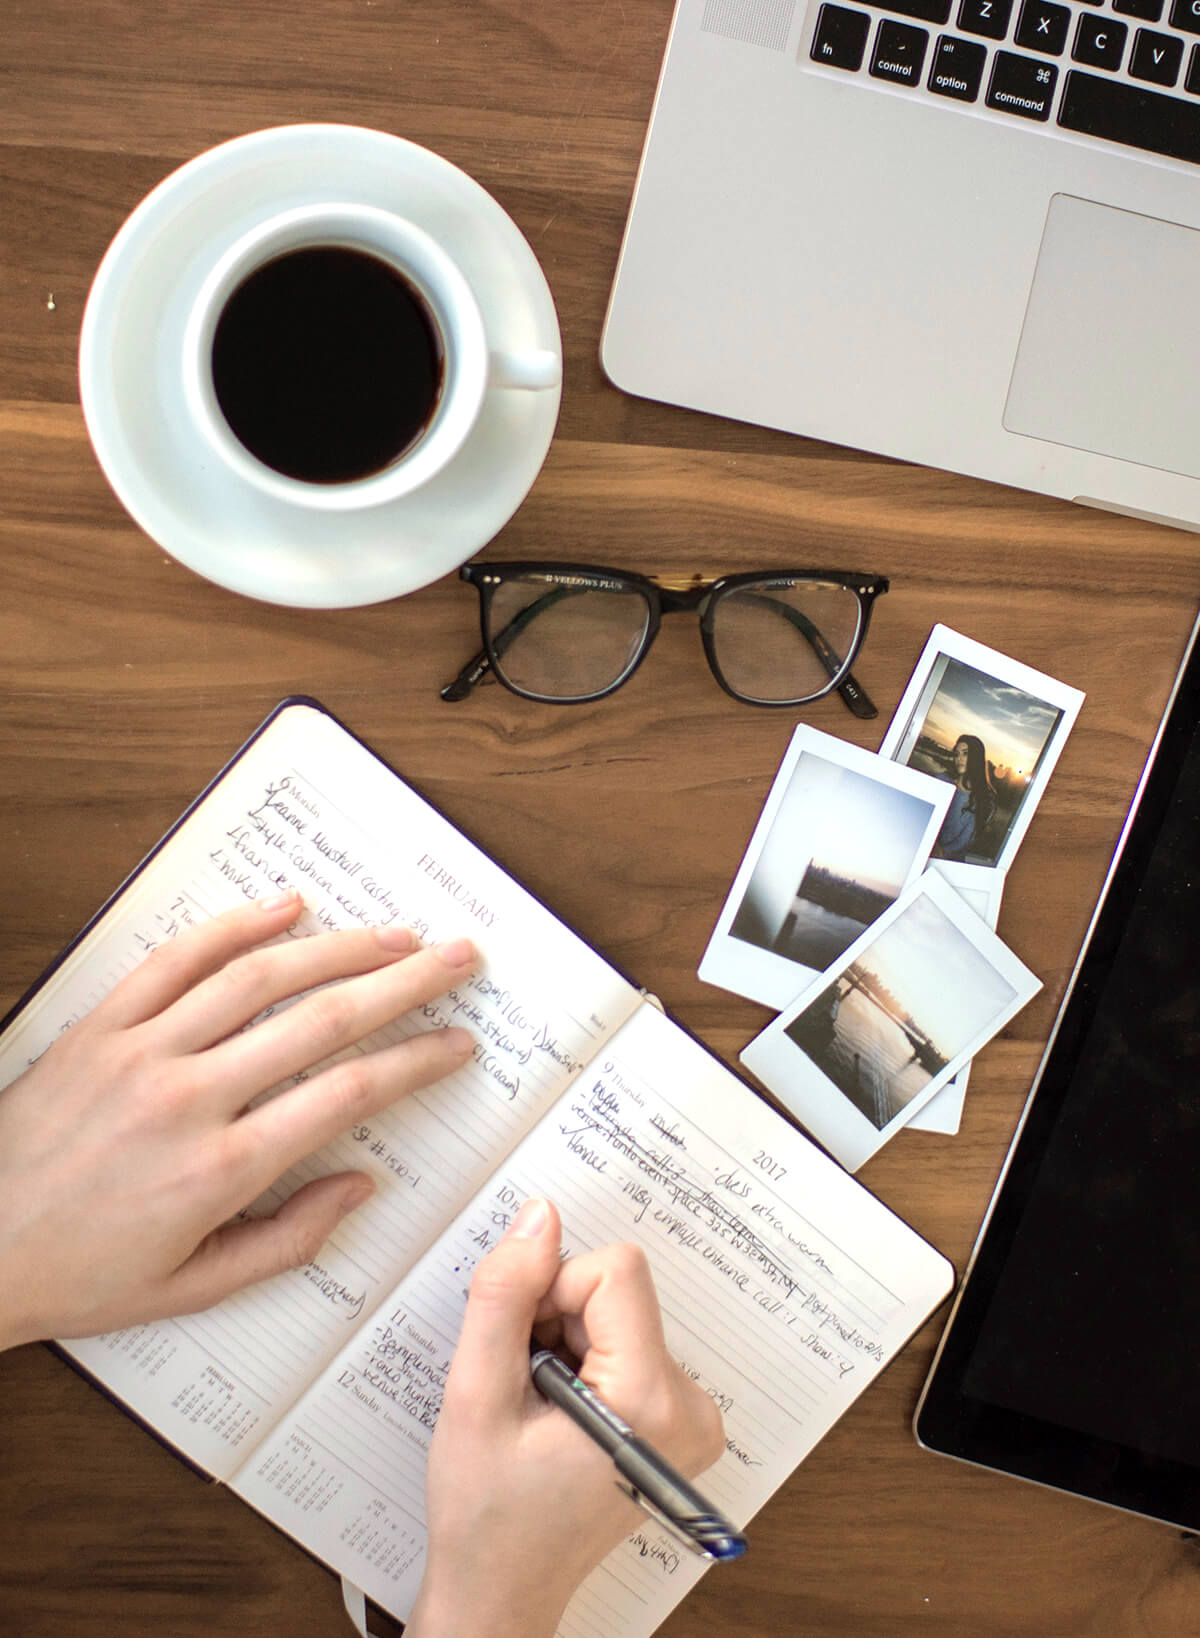 birdseye view of a person writing at a desk surrounded by coffee, photos, glasses and a laptop